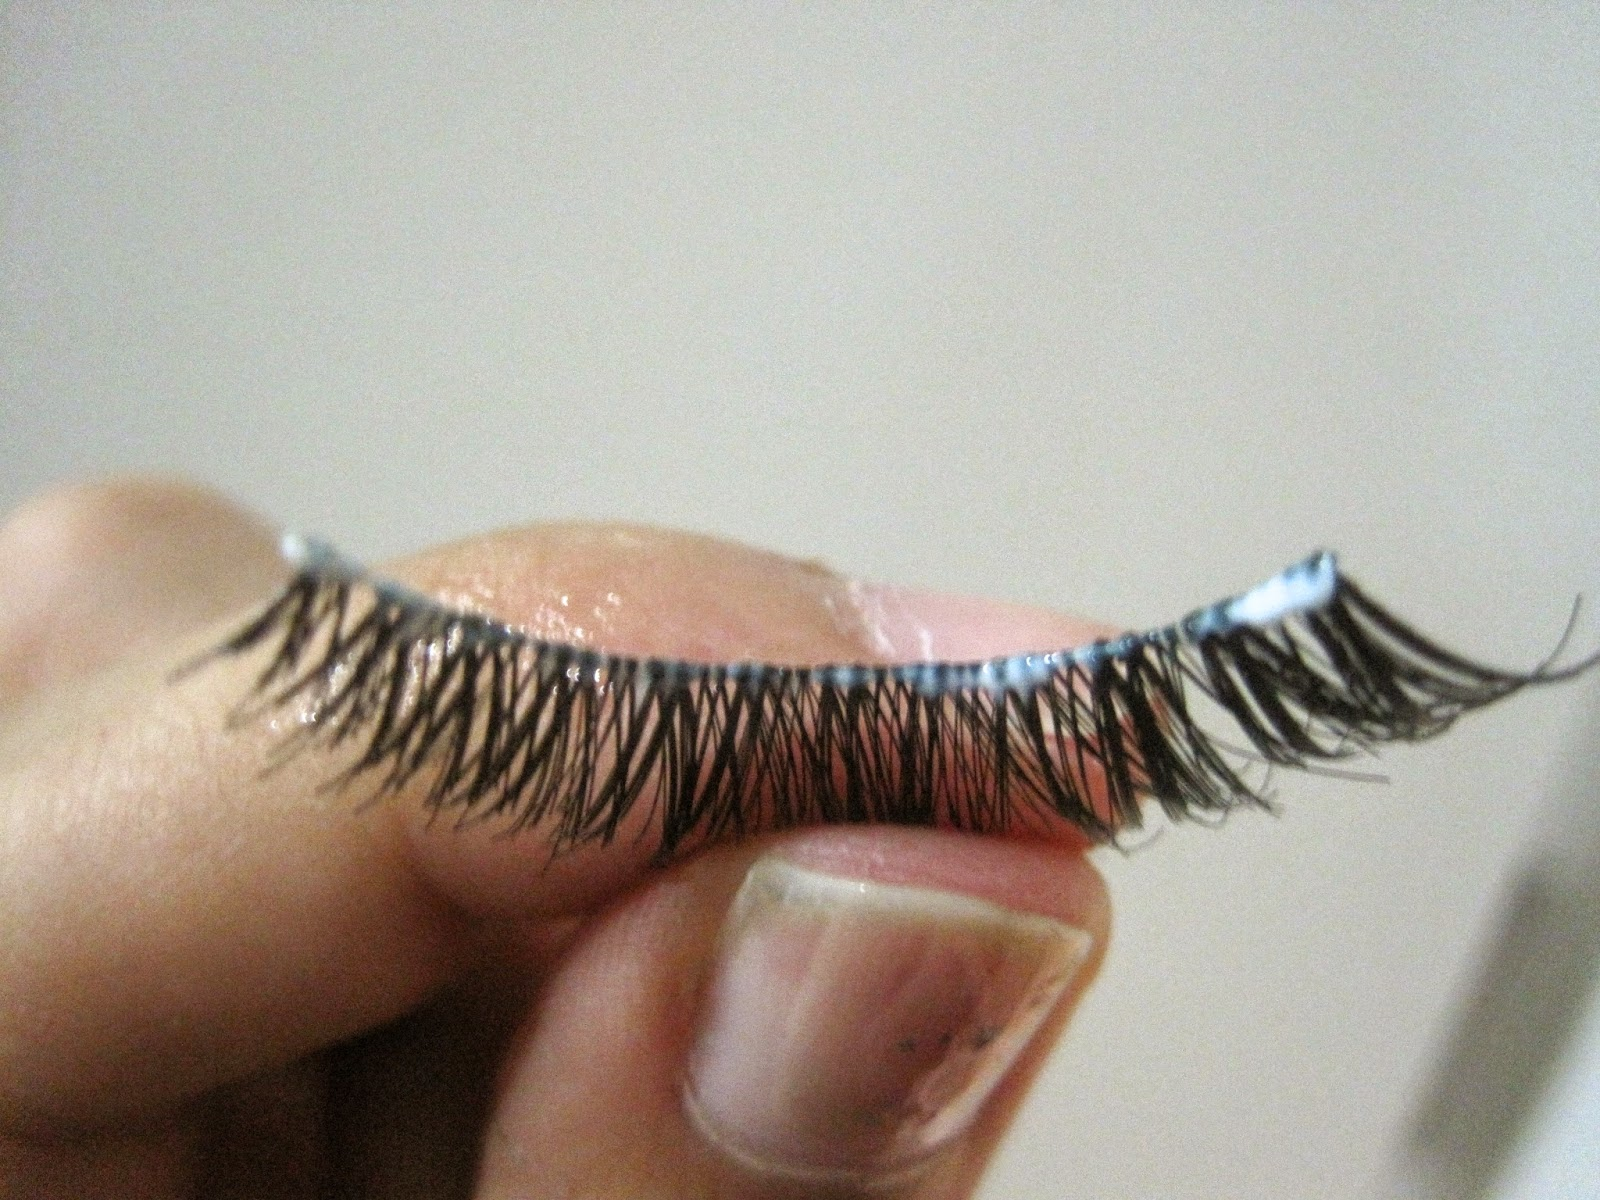 f6a5a13a27c But for me, I just want to hide the fact I'm wearing false lashes with as  little eyeliner as possible and so I picked out these.